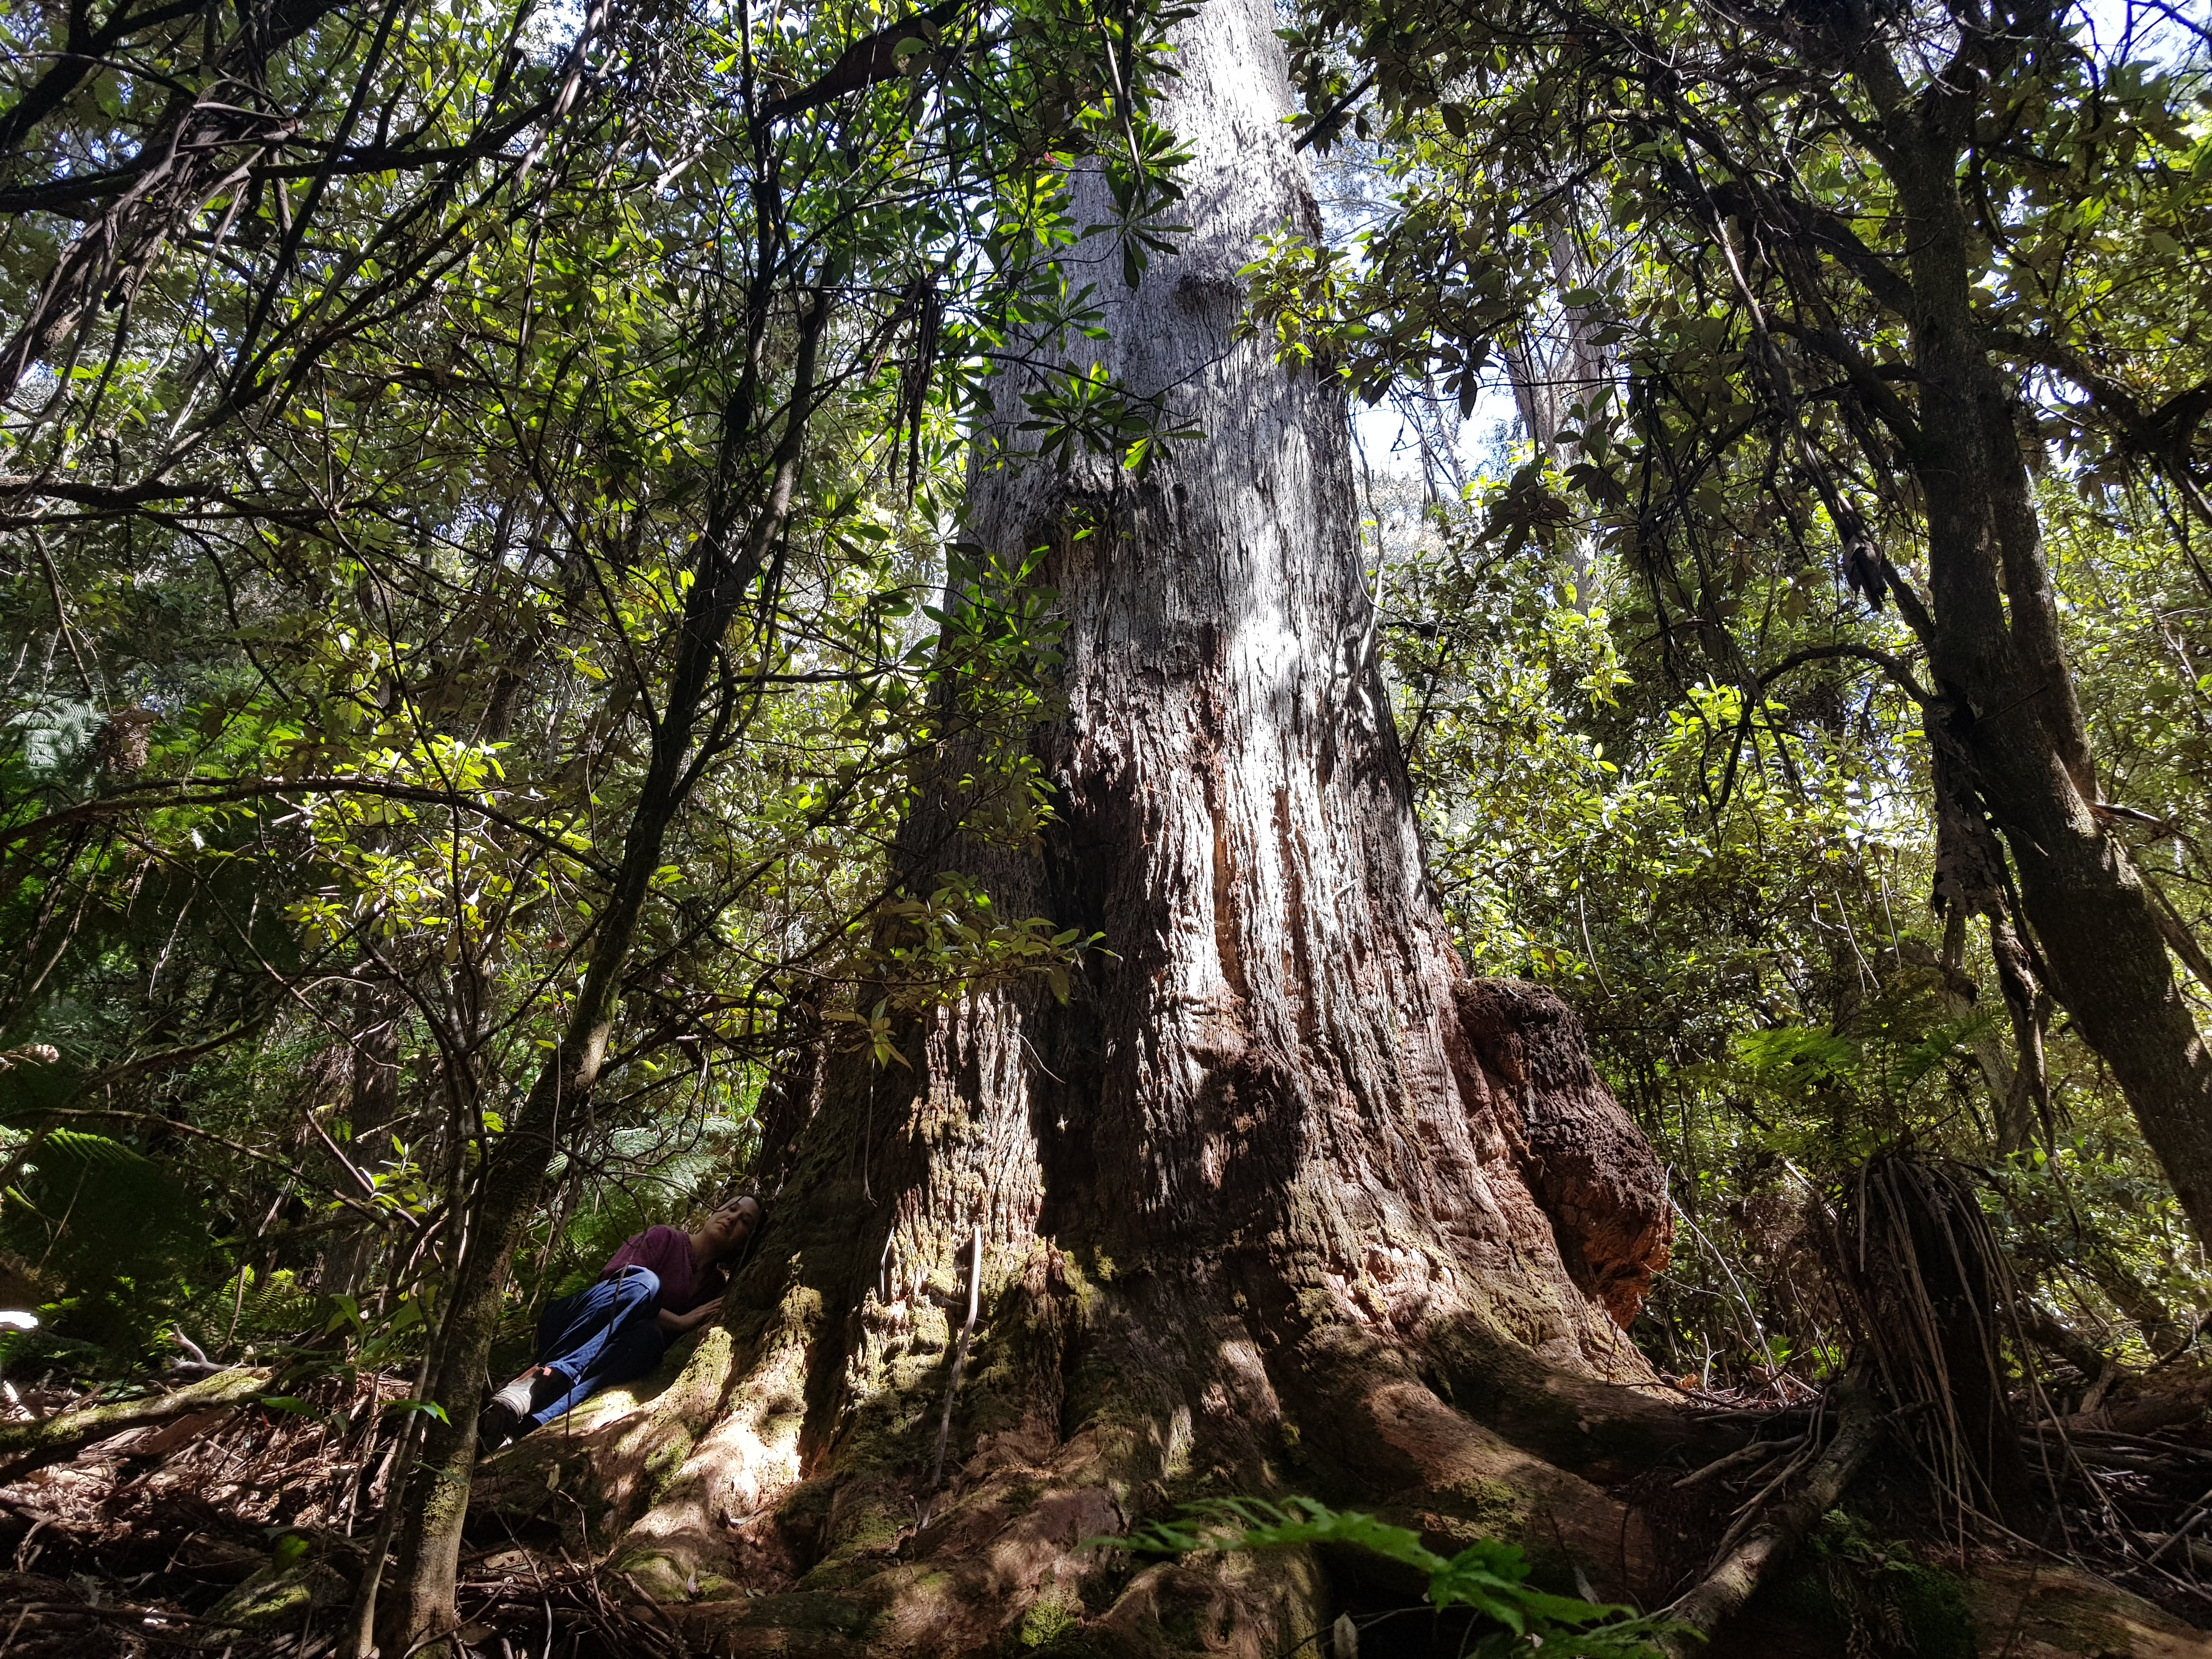 Person sits next to a giant tree in beautiful forest